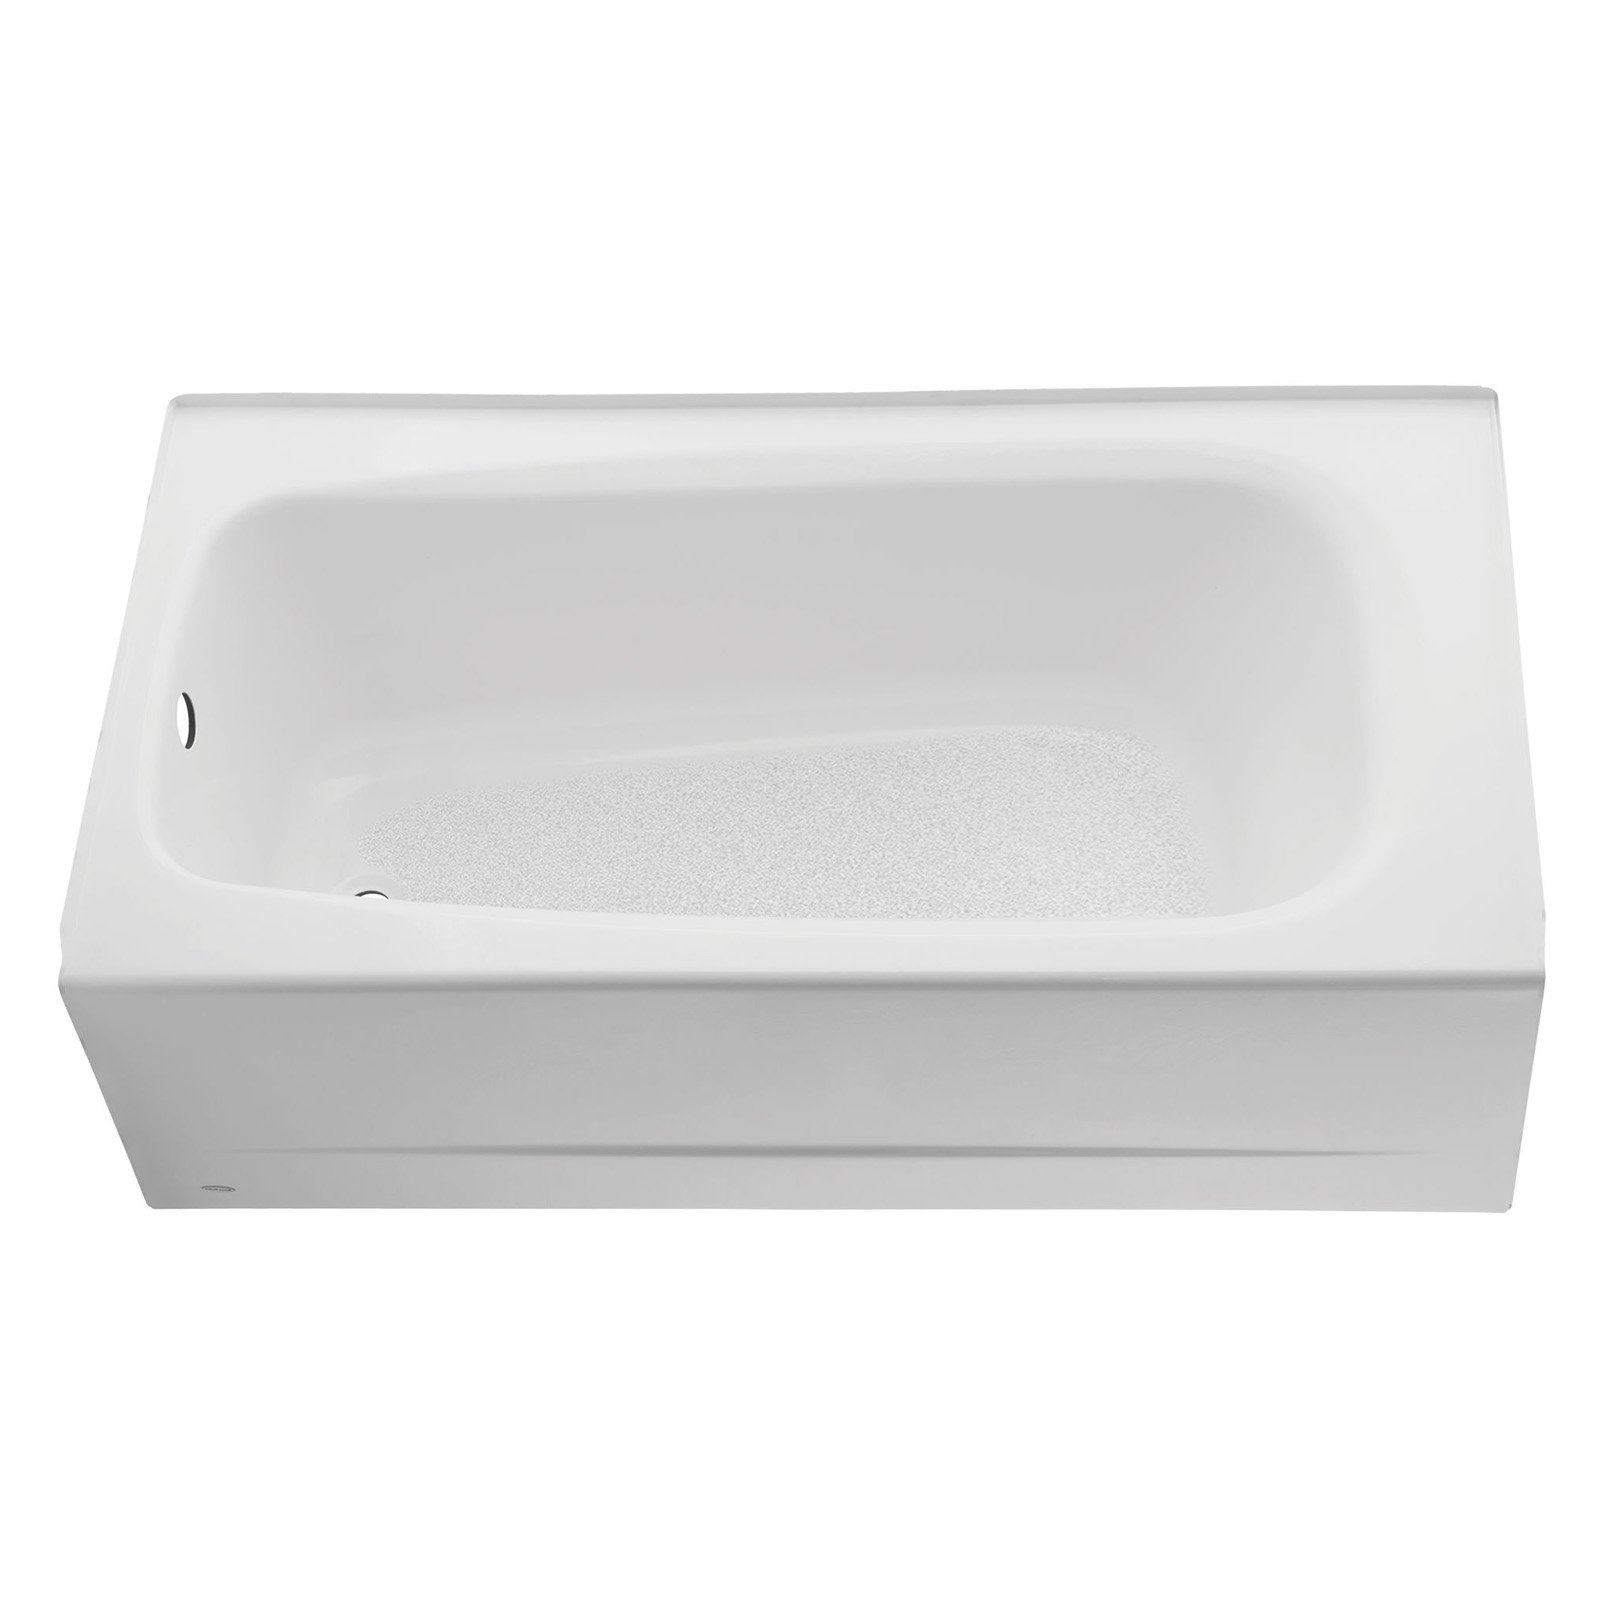 American Standard Cambridge 2460.002.020 60 in. Soaking Bathtub ...